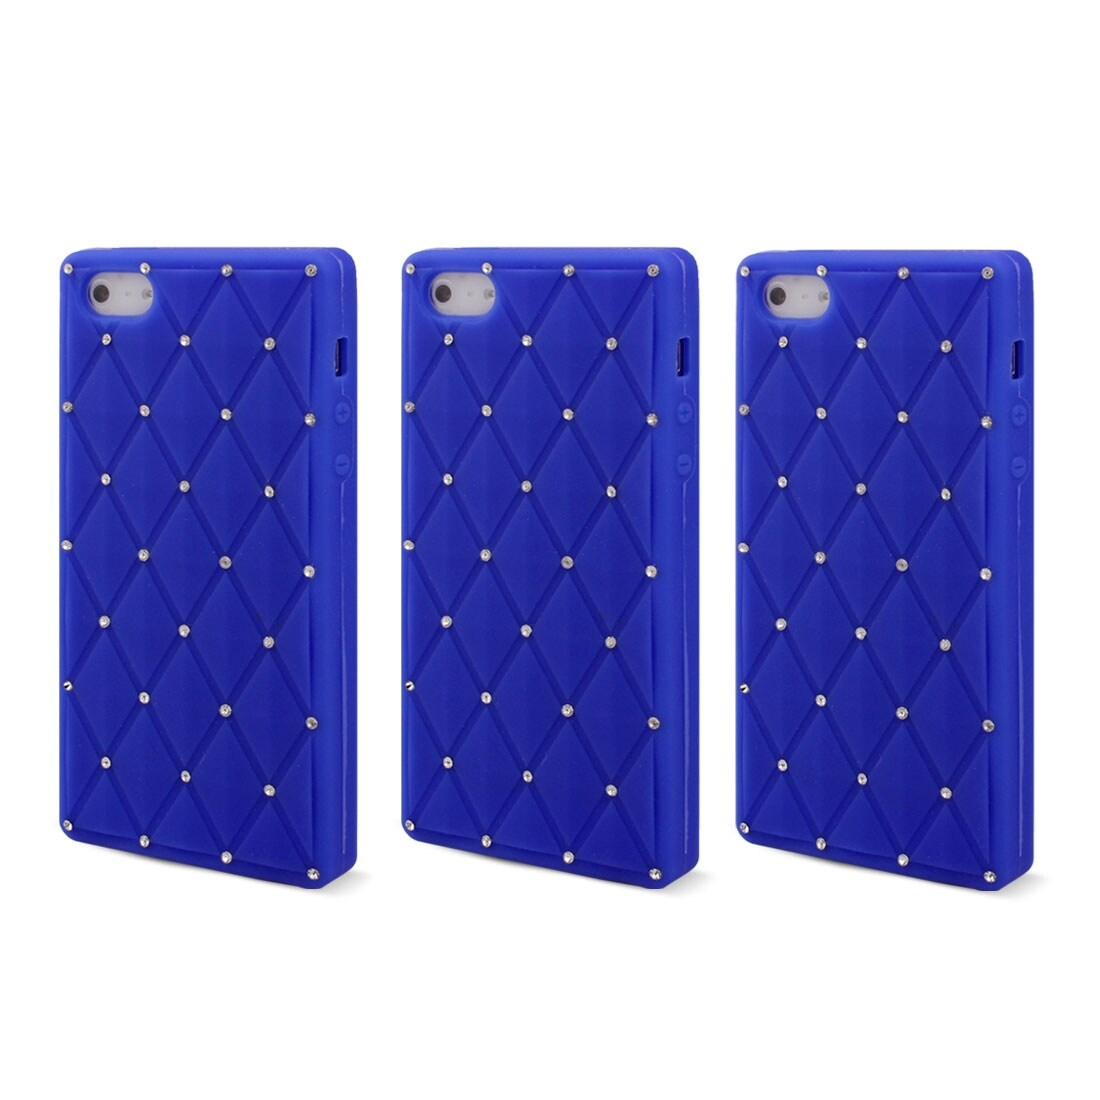 09e453a2b3 Shop Artificial Rhinestones Decor Back Case Cover Protector Blue 3 PCS for  iPhone 5 - Free Shipping On Orders Over $45 - Overstock - 18320998